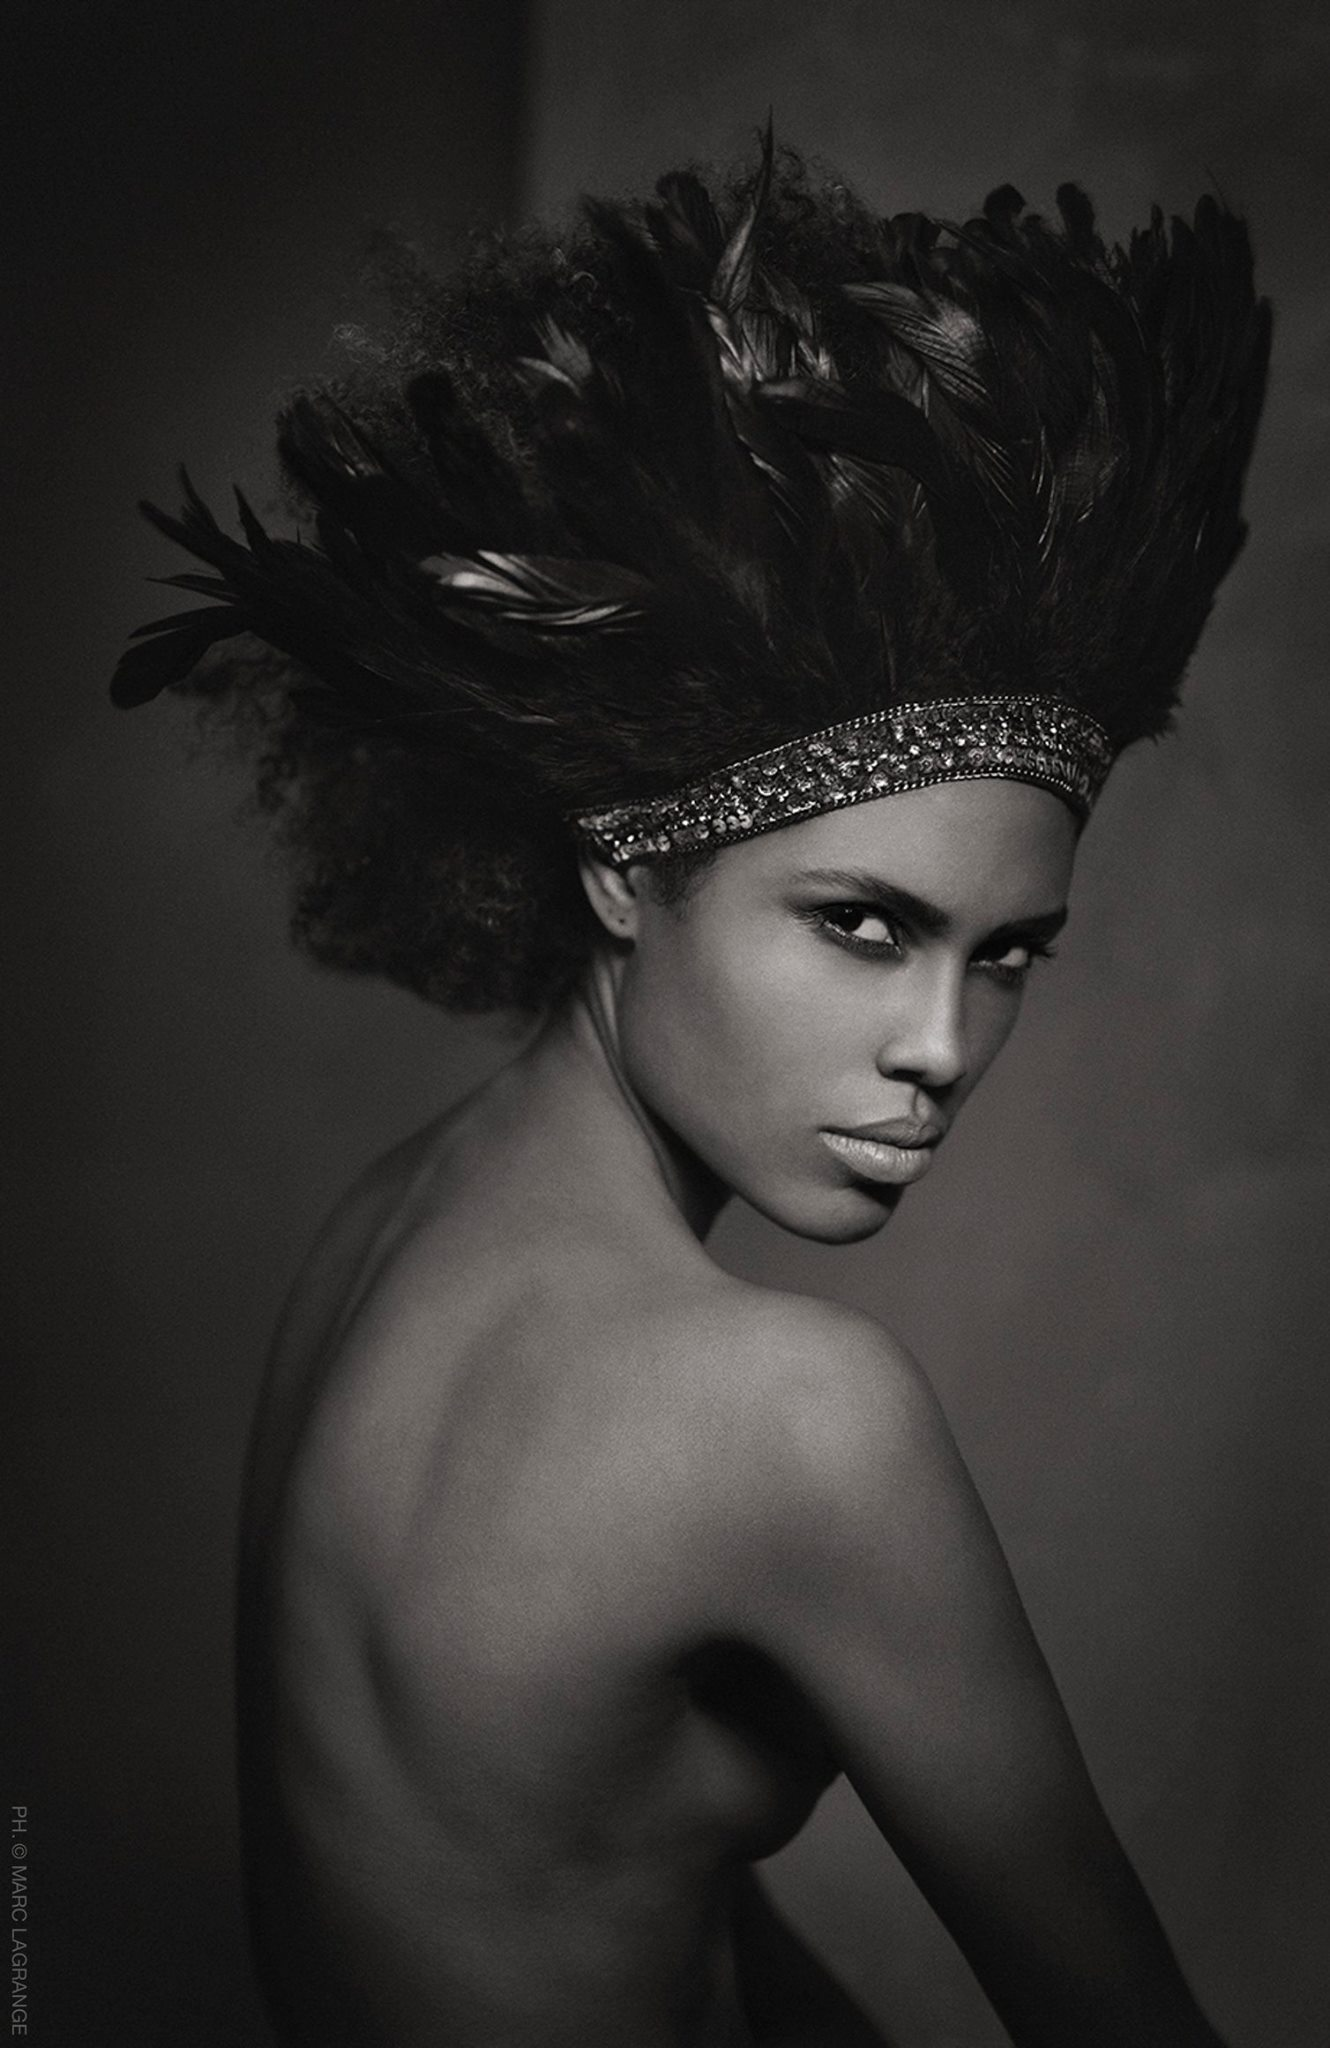 Evocative and Sensual Photography by Marc Lagrange